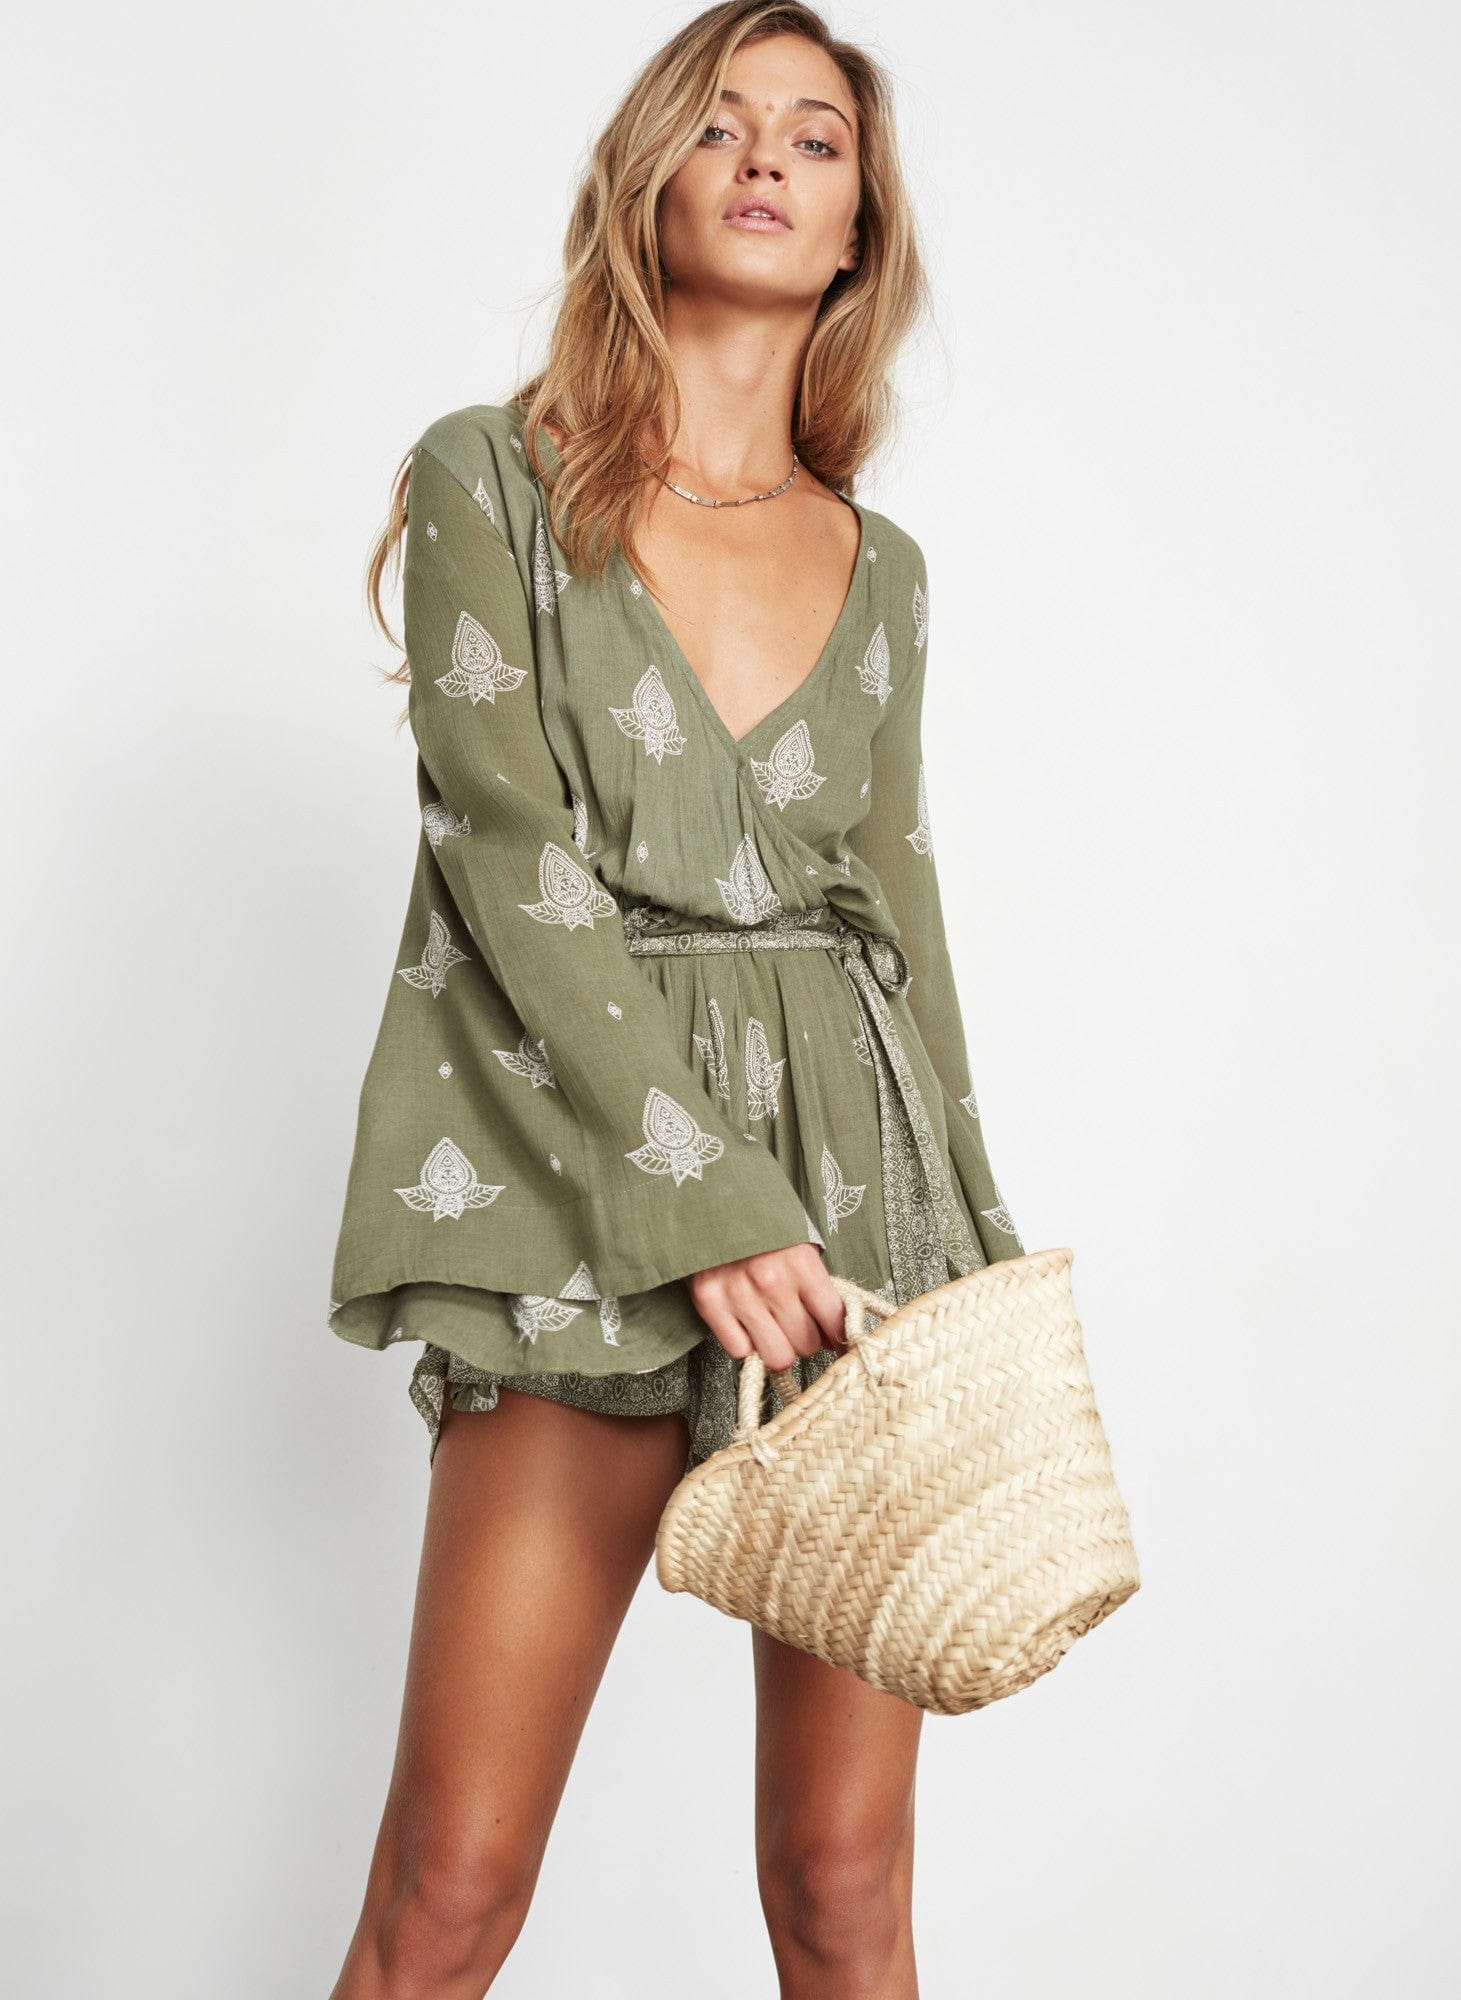 LA LOMA PRINT - KHAKI - LONG BAY PLAYSUIT